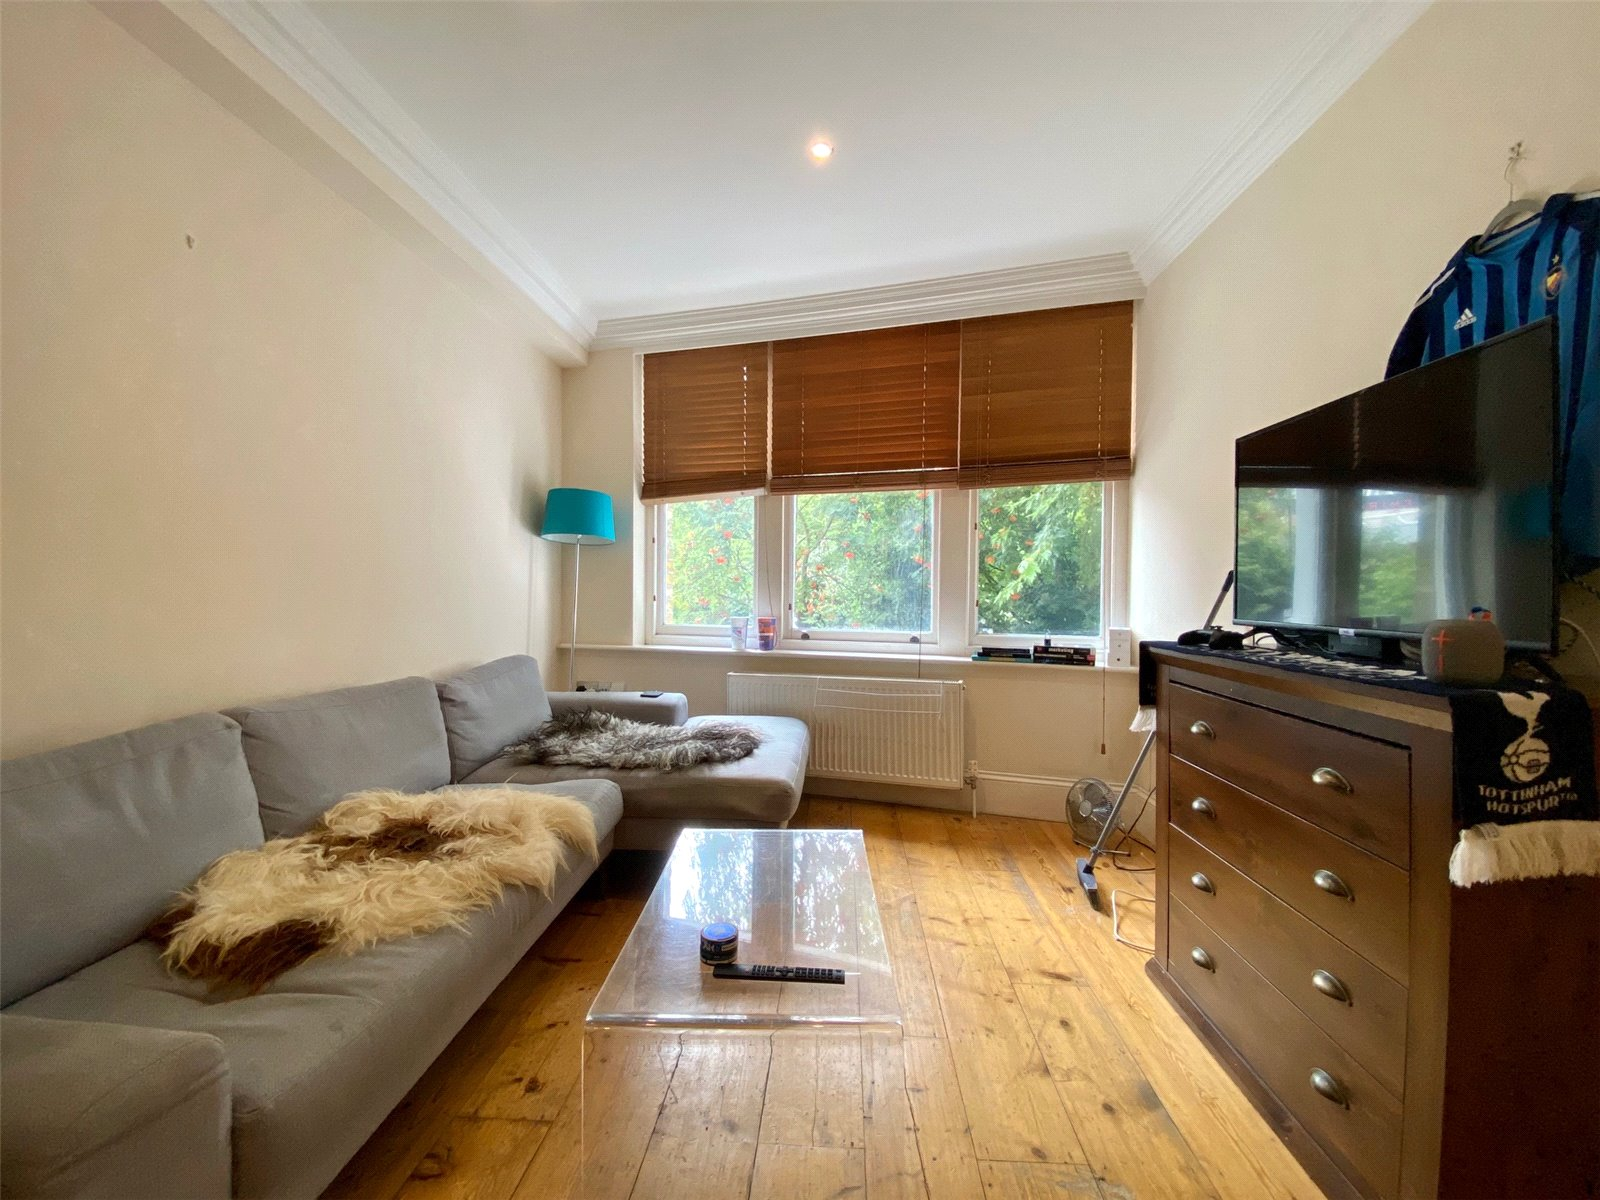 2 bed apartment for sale in Arsenal, N5 1LU  - Property Image 1